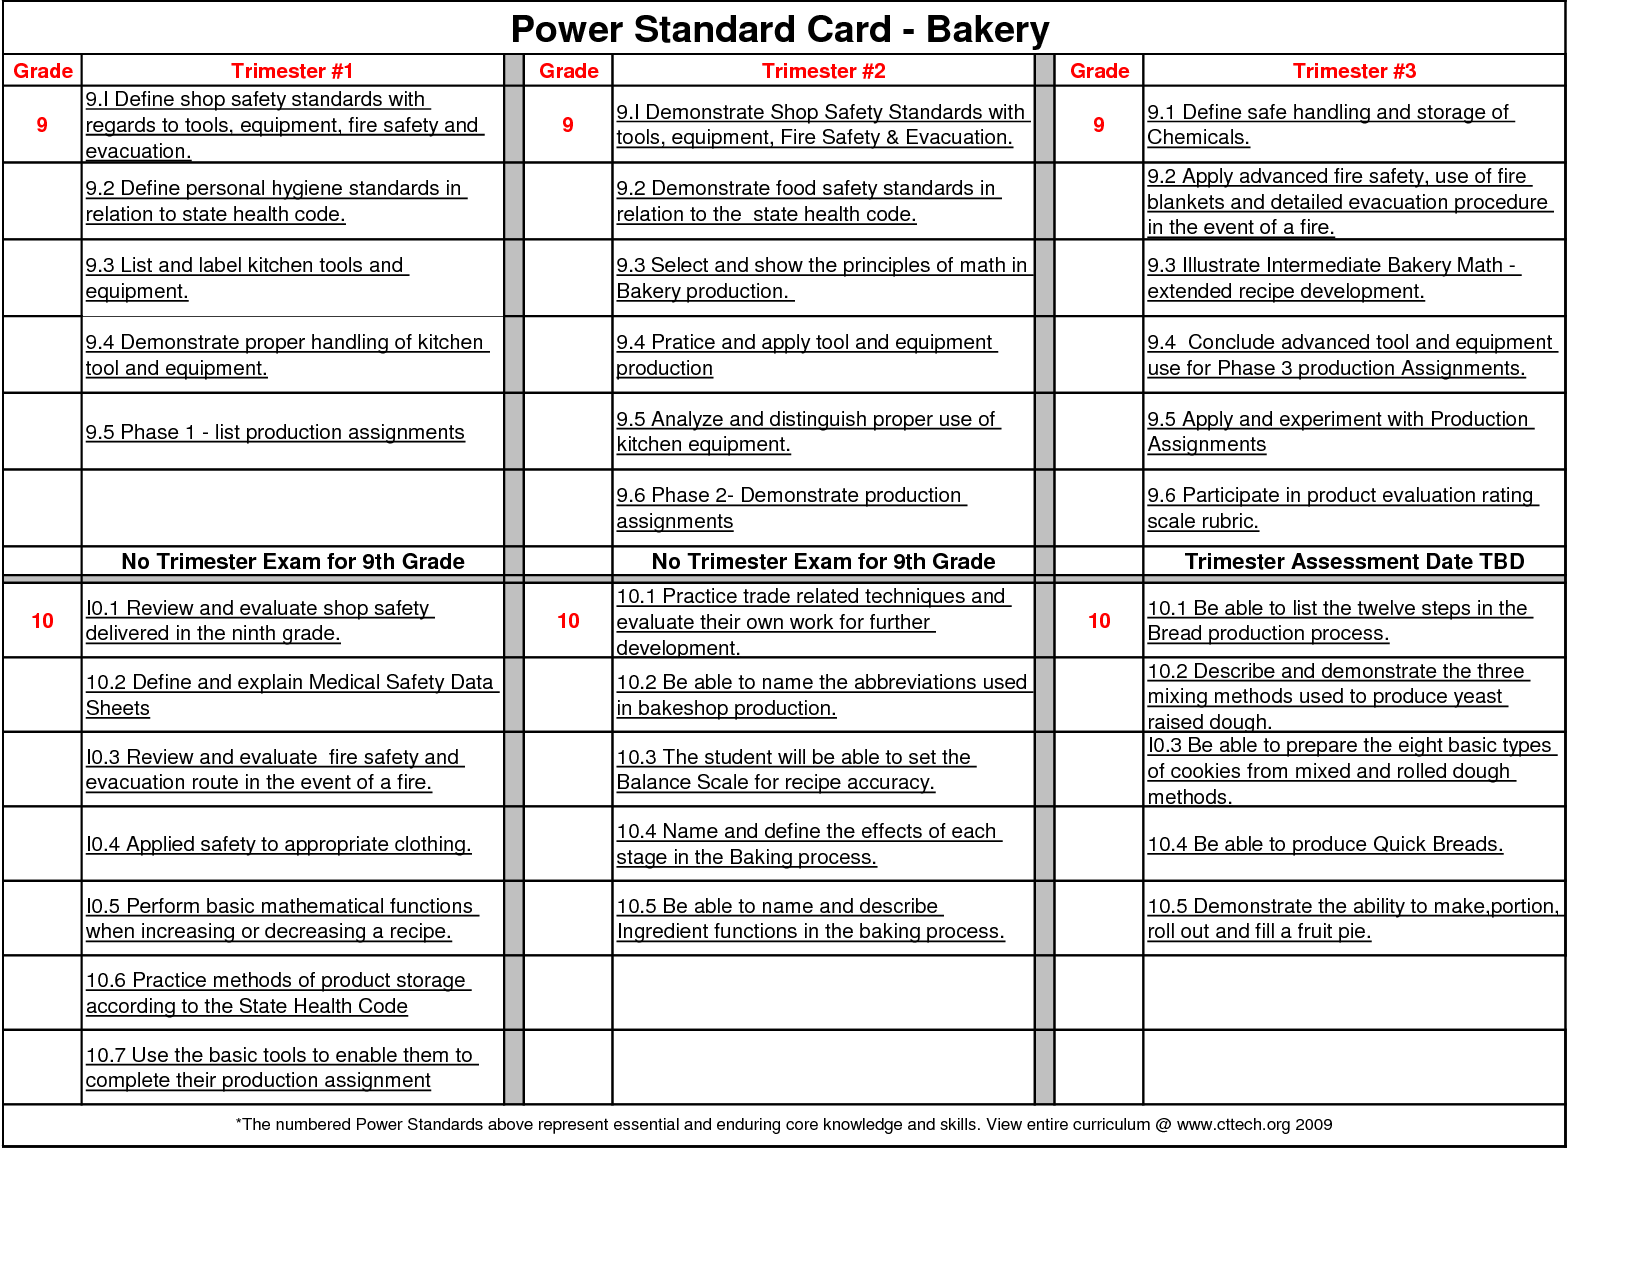 Business Plan Small Bakery Power Standard Card cakepins